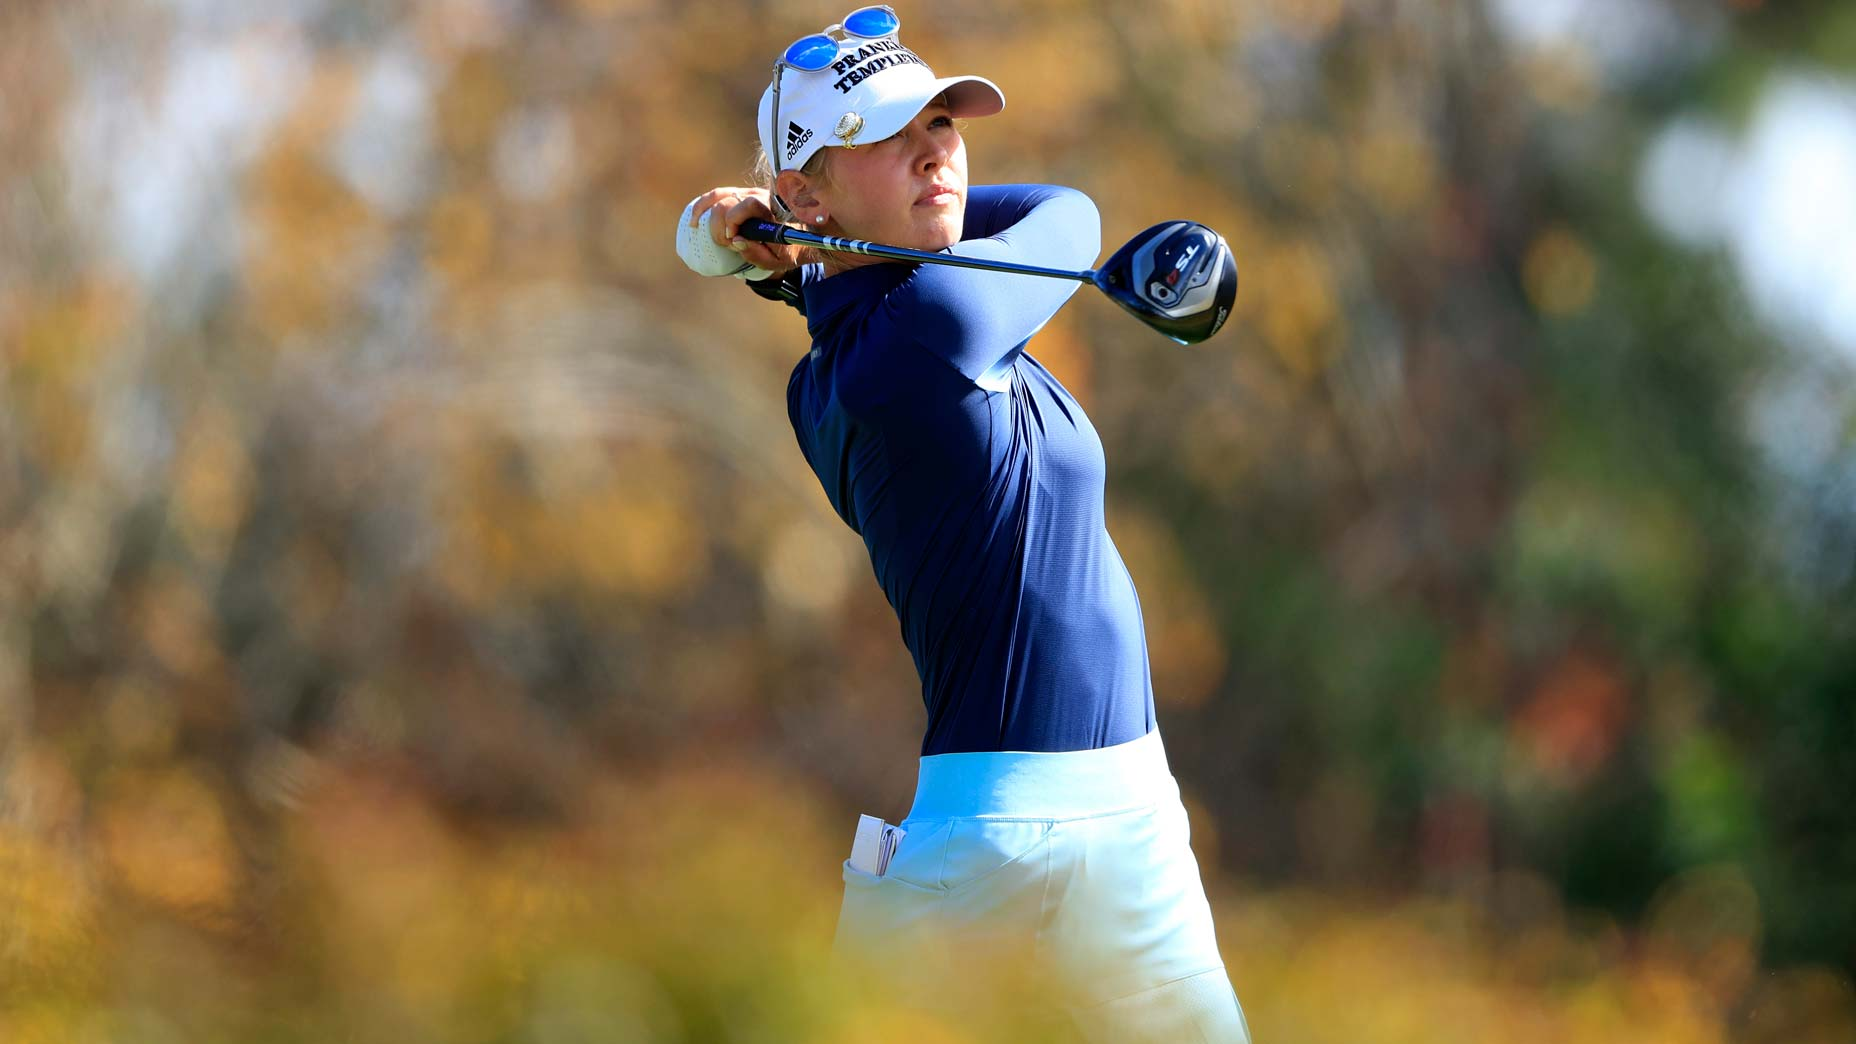 Say goodbye to your slice for good with this drill from an LPGA Tour star